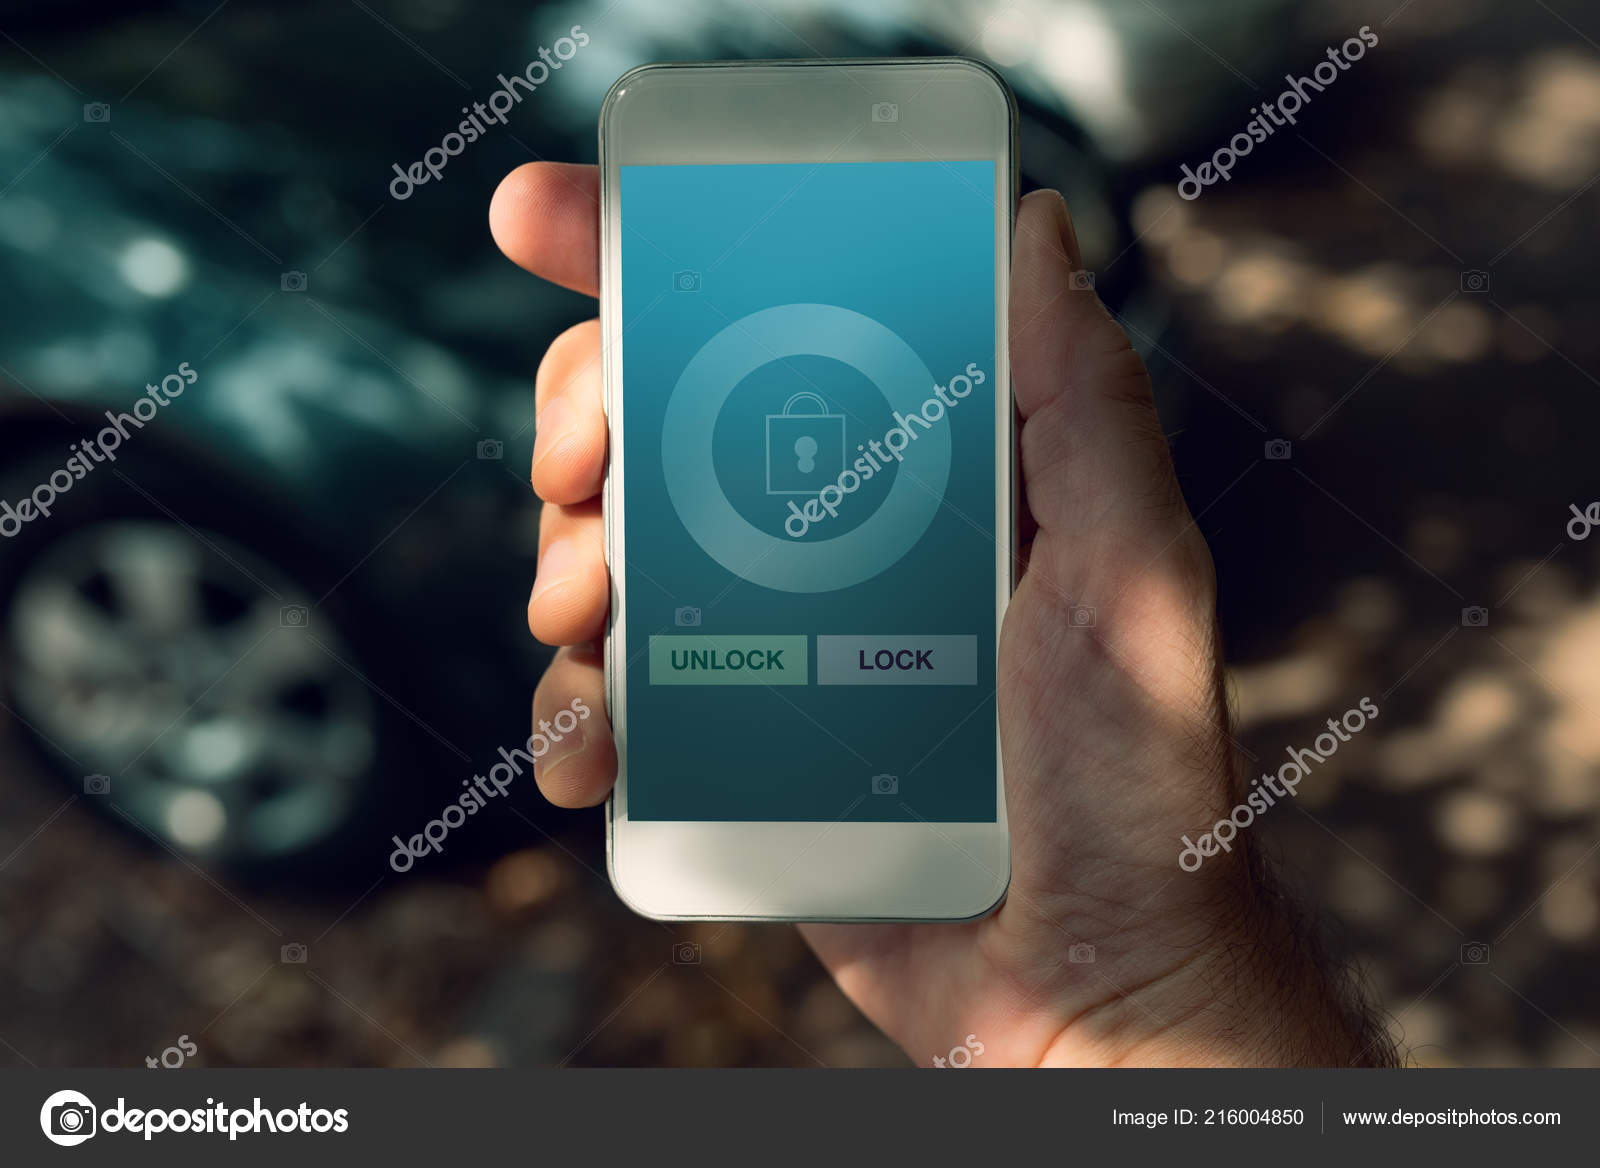 Unlock Car With Phone >> Car Lock Unlock Smart Phone App Mock Screen Stock Photo